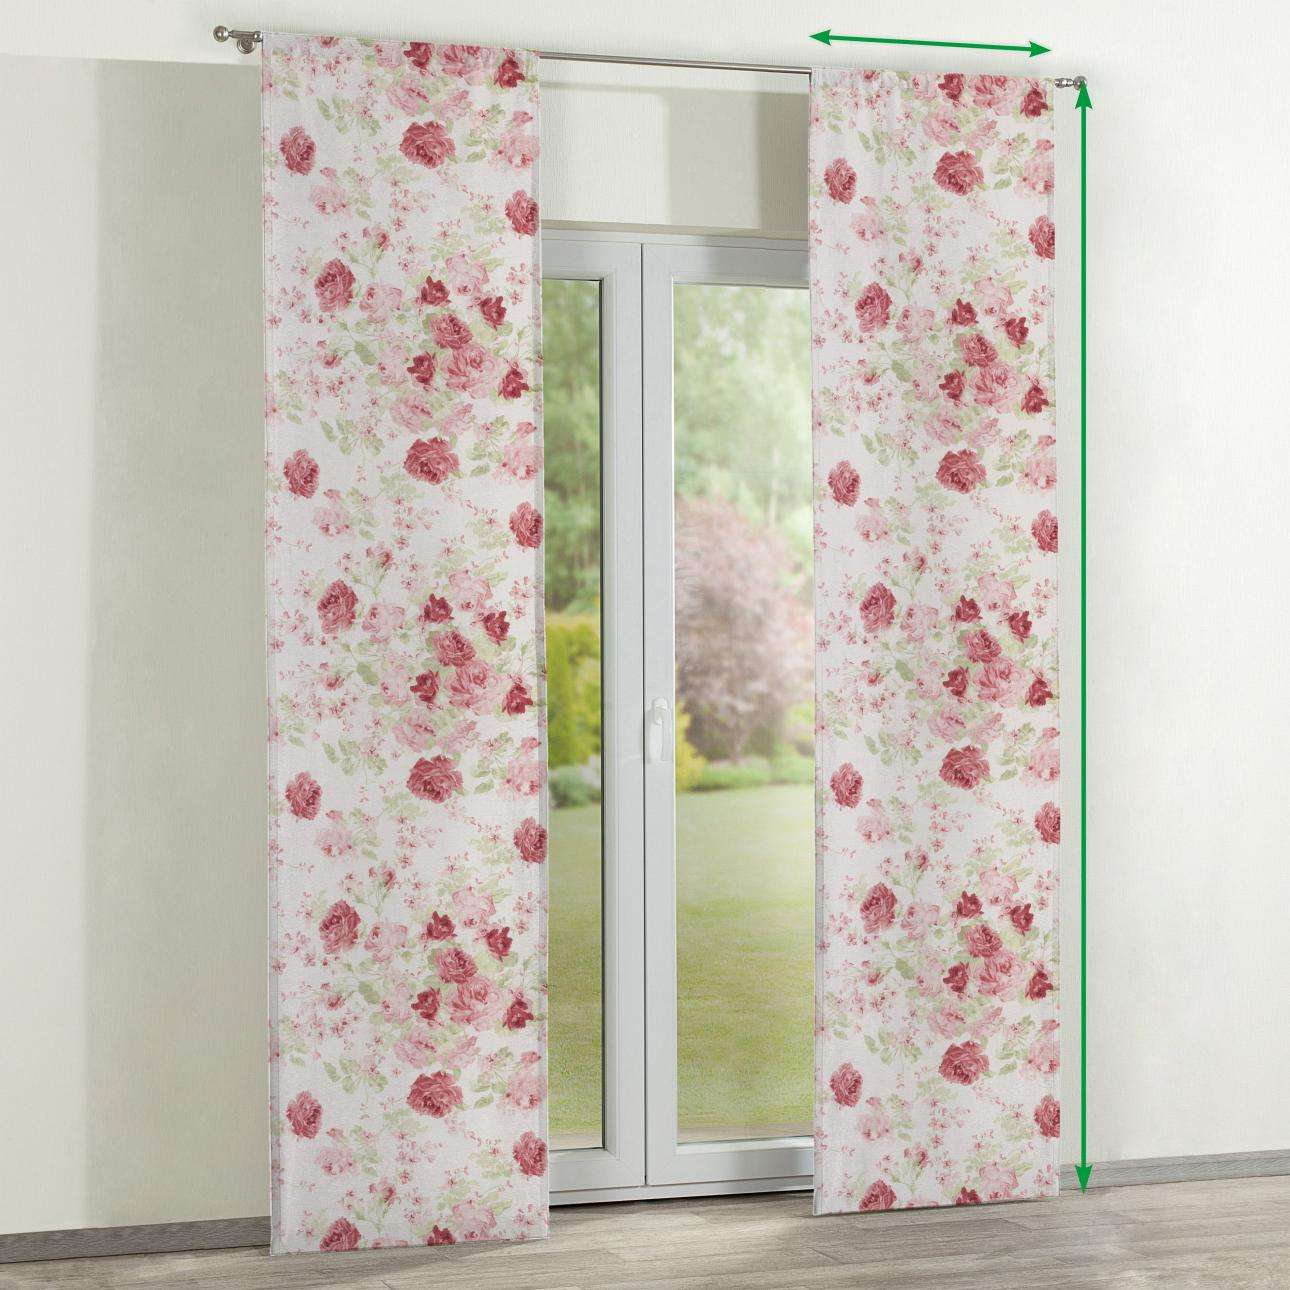 Slot panel curtains – Set of 2 in collection Flowers, fabric: 140-90